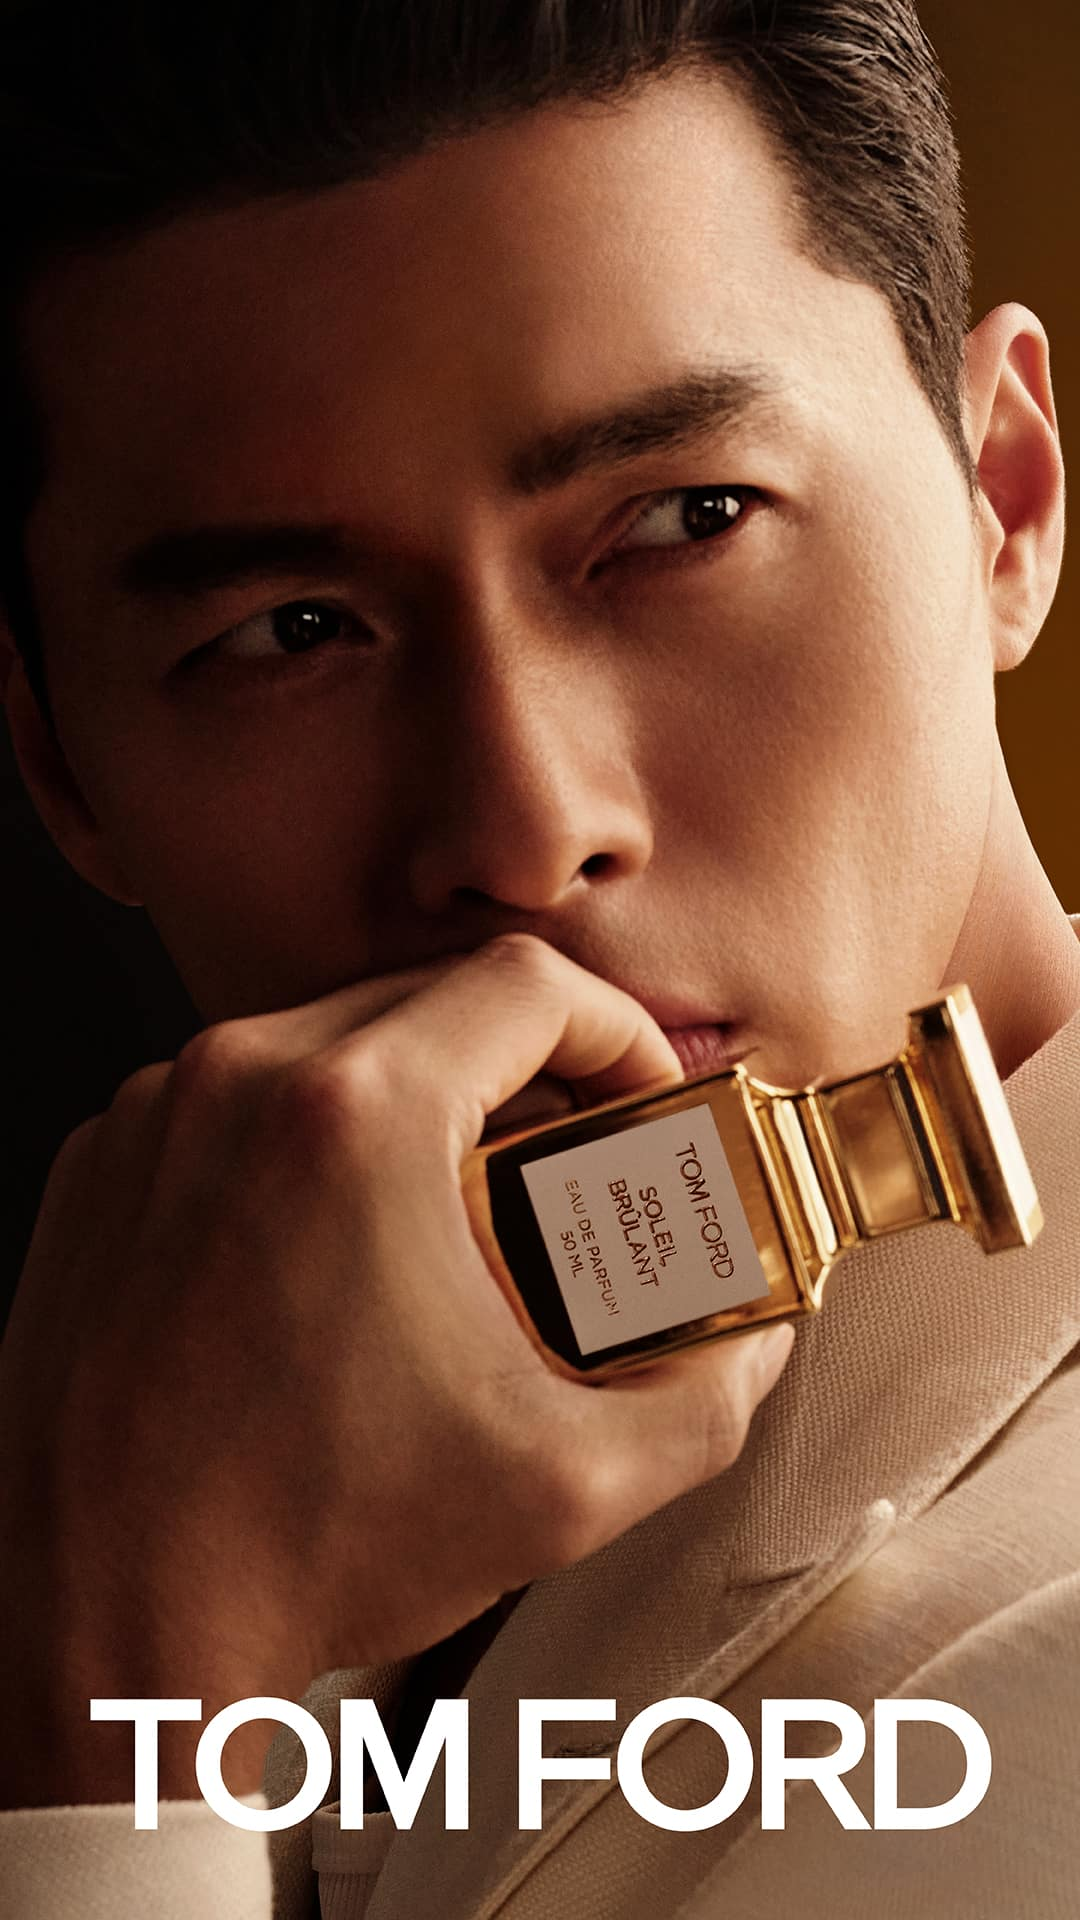 Hyun Bin is the newest endorser of Tom Ford Fragrance